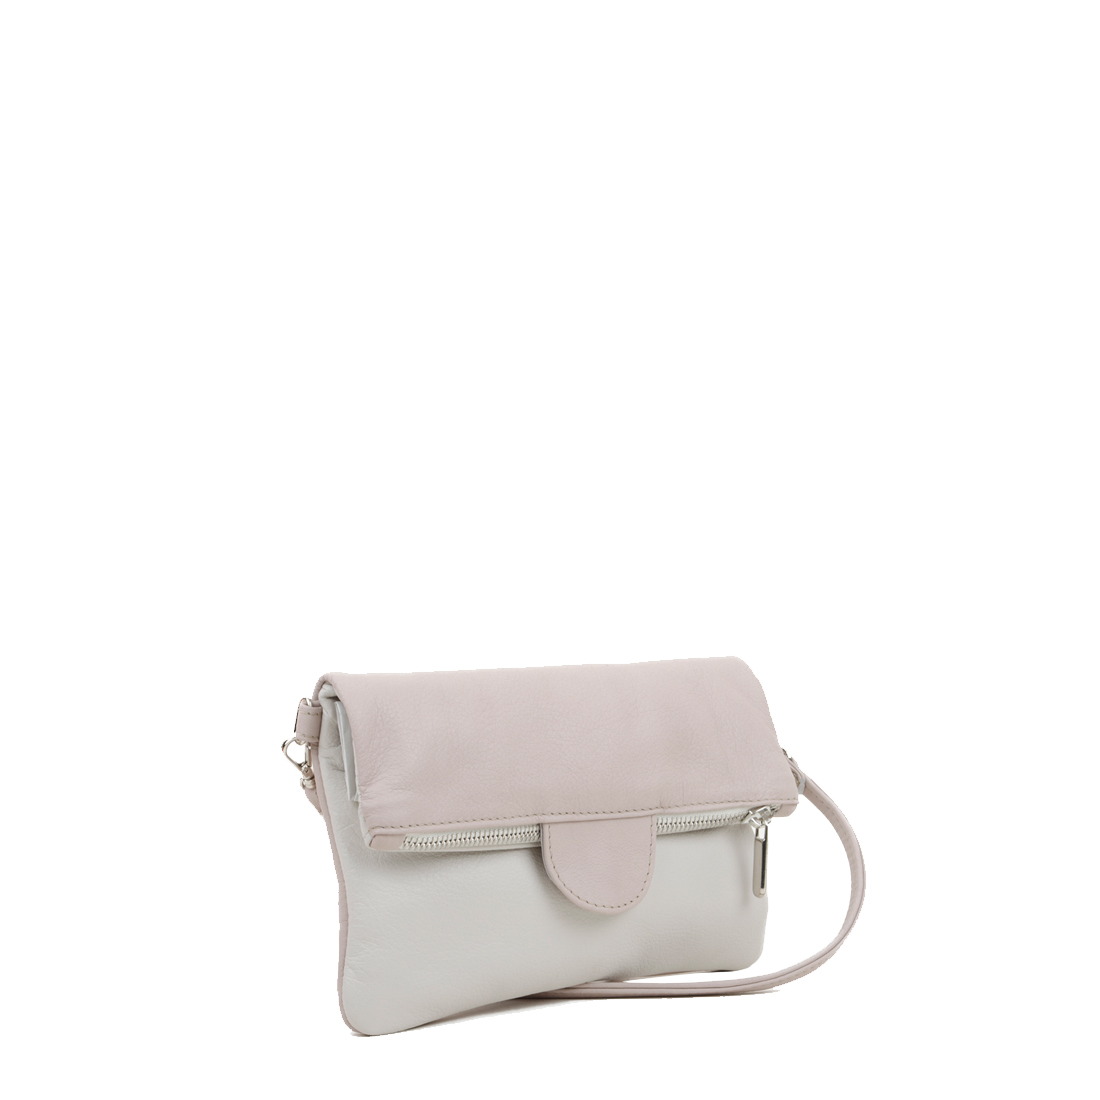 Lilly Pale Pink Polvere Across Body Bag